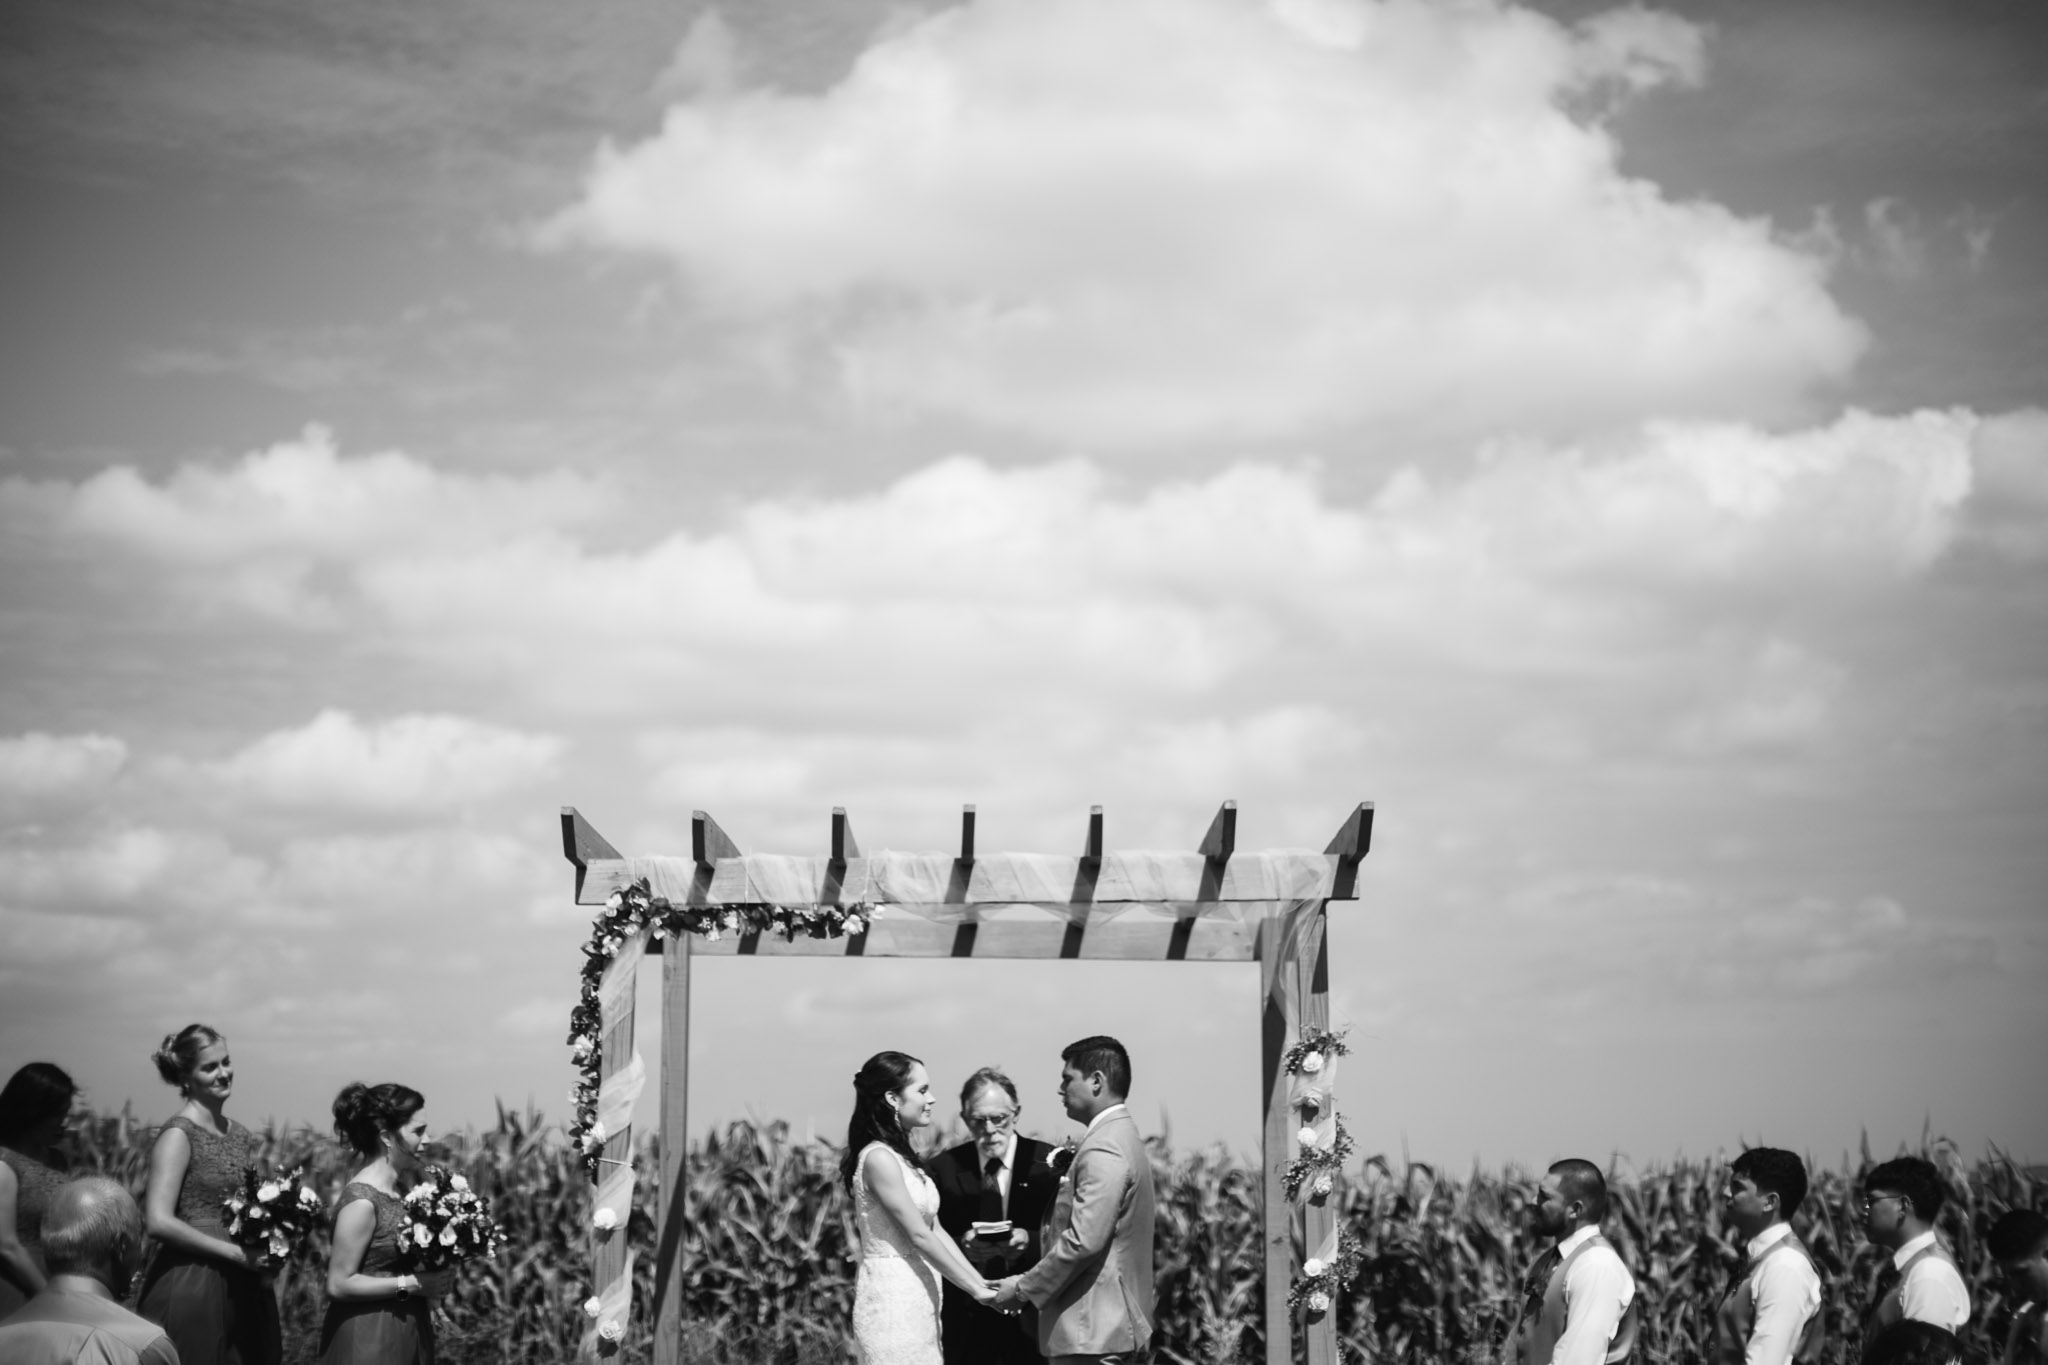 Outdoor Wedding Ceremony, Pittsburgh Wedding Photographer, The Event Barn at Highland Farms, Somerset PA-5124.jpg